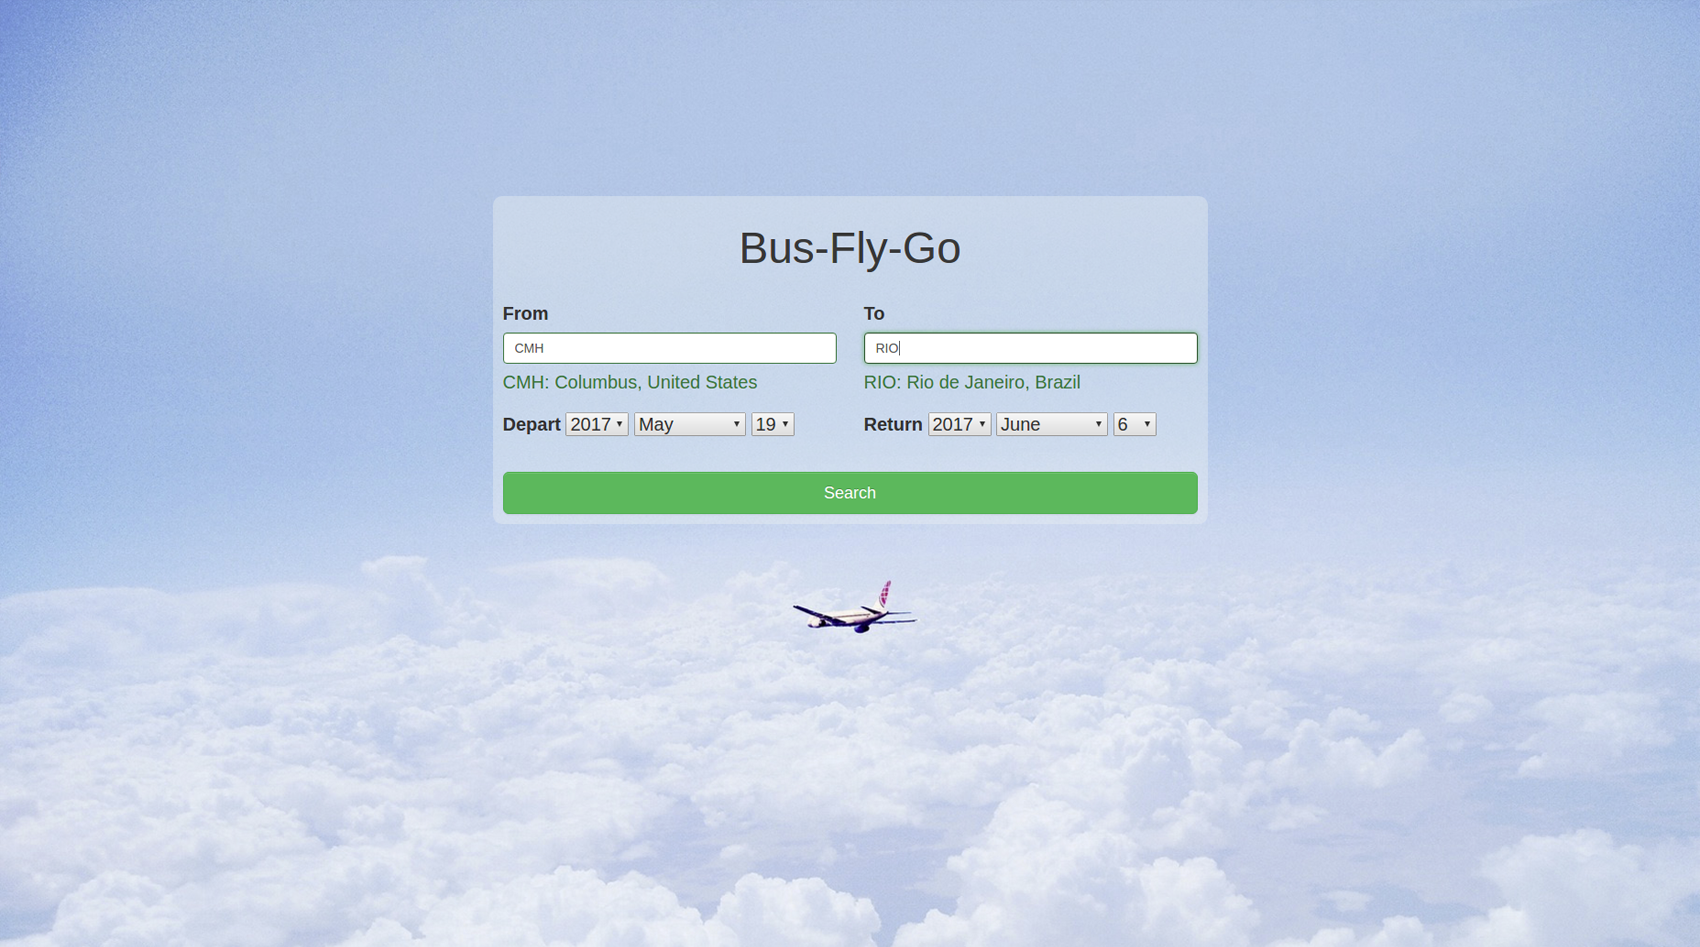 Bus-Fly-Go